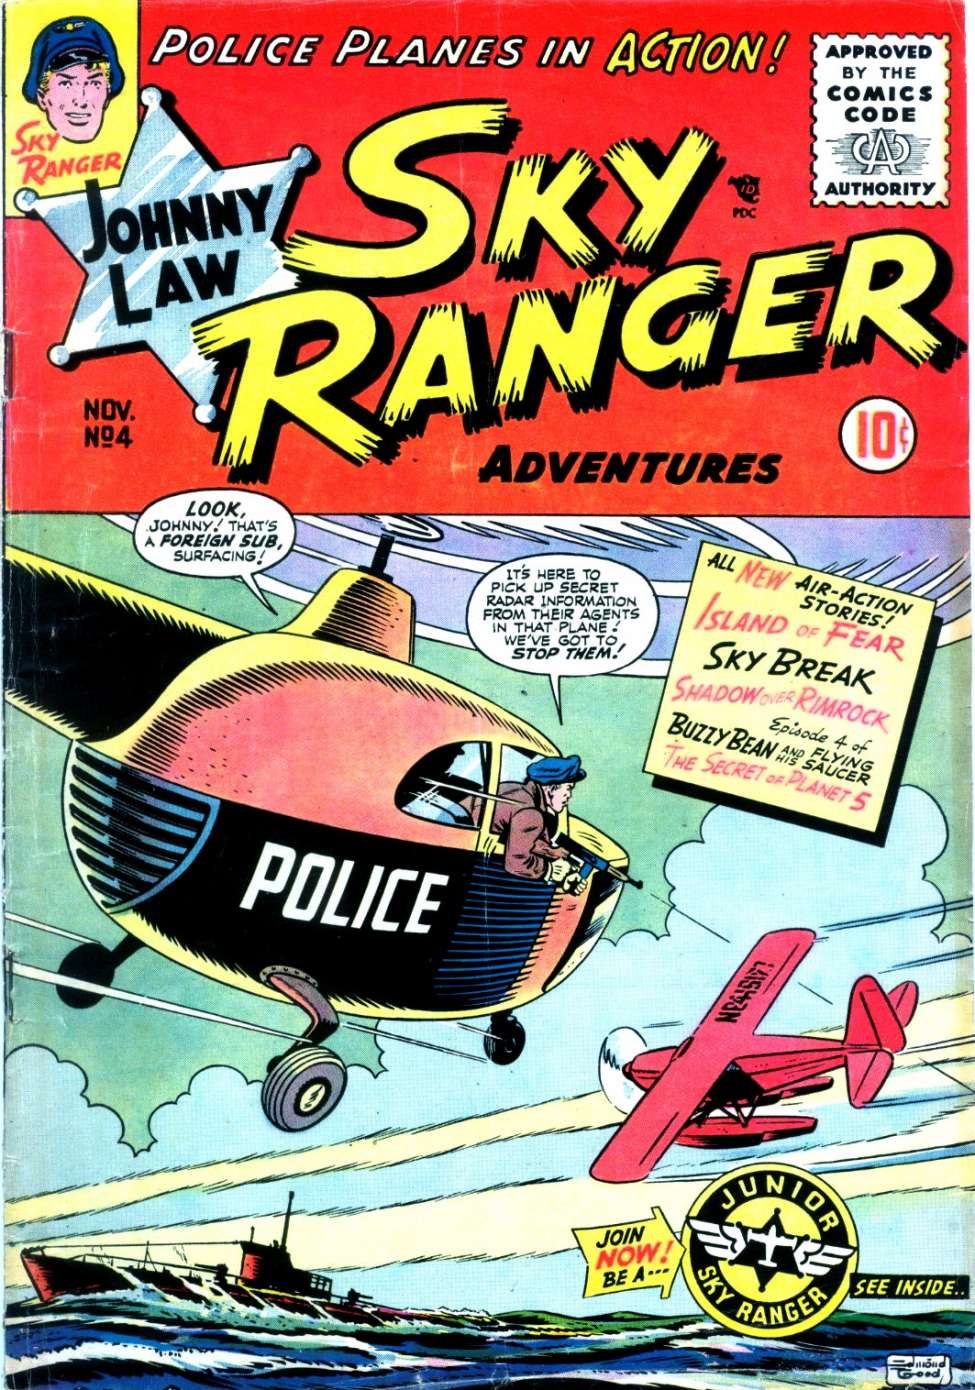 Comic Book Cover For Johnny Law, Sky Ranger #4